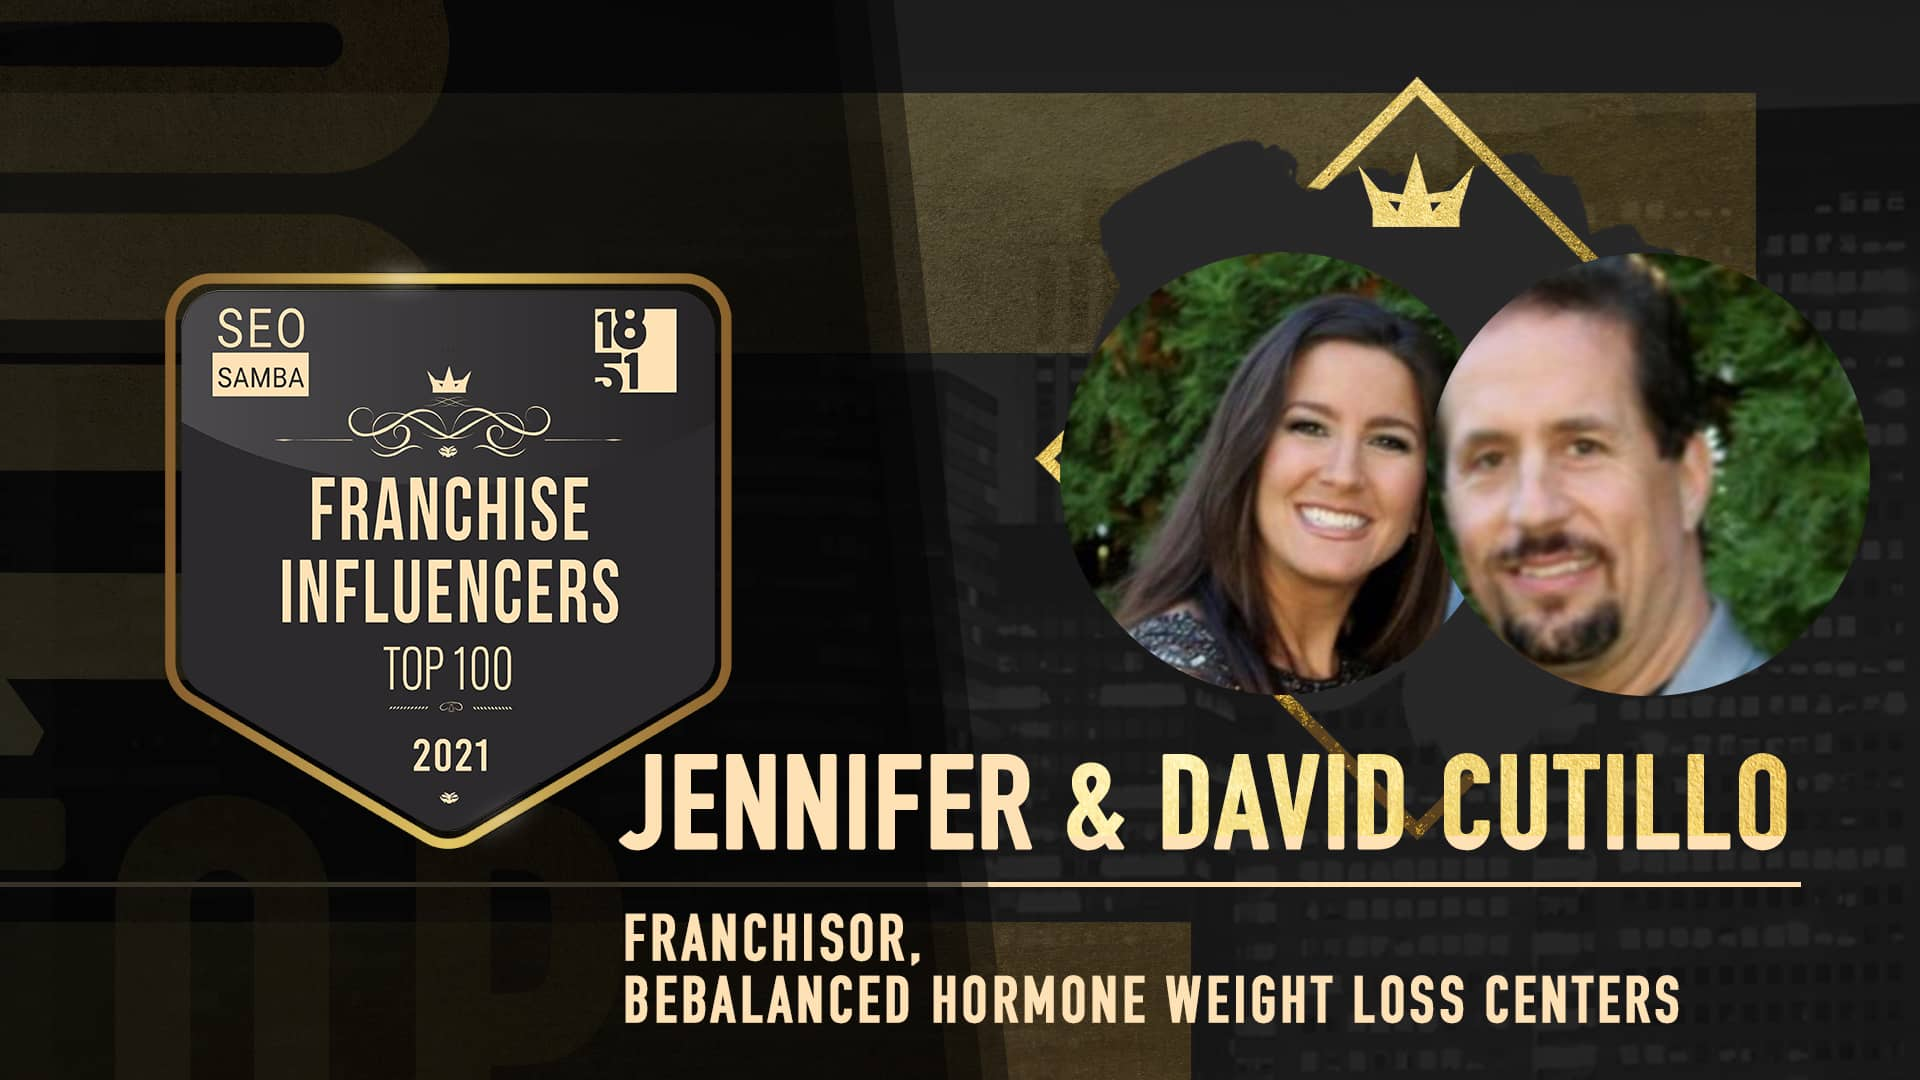 jennifer-and-david-cutillo-bebalanced-hormone-weight-loss-centers